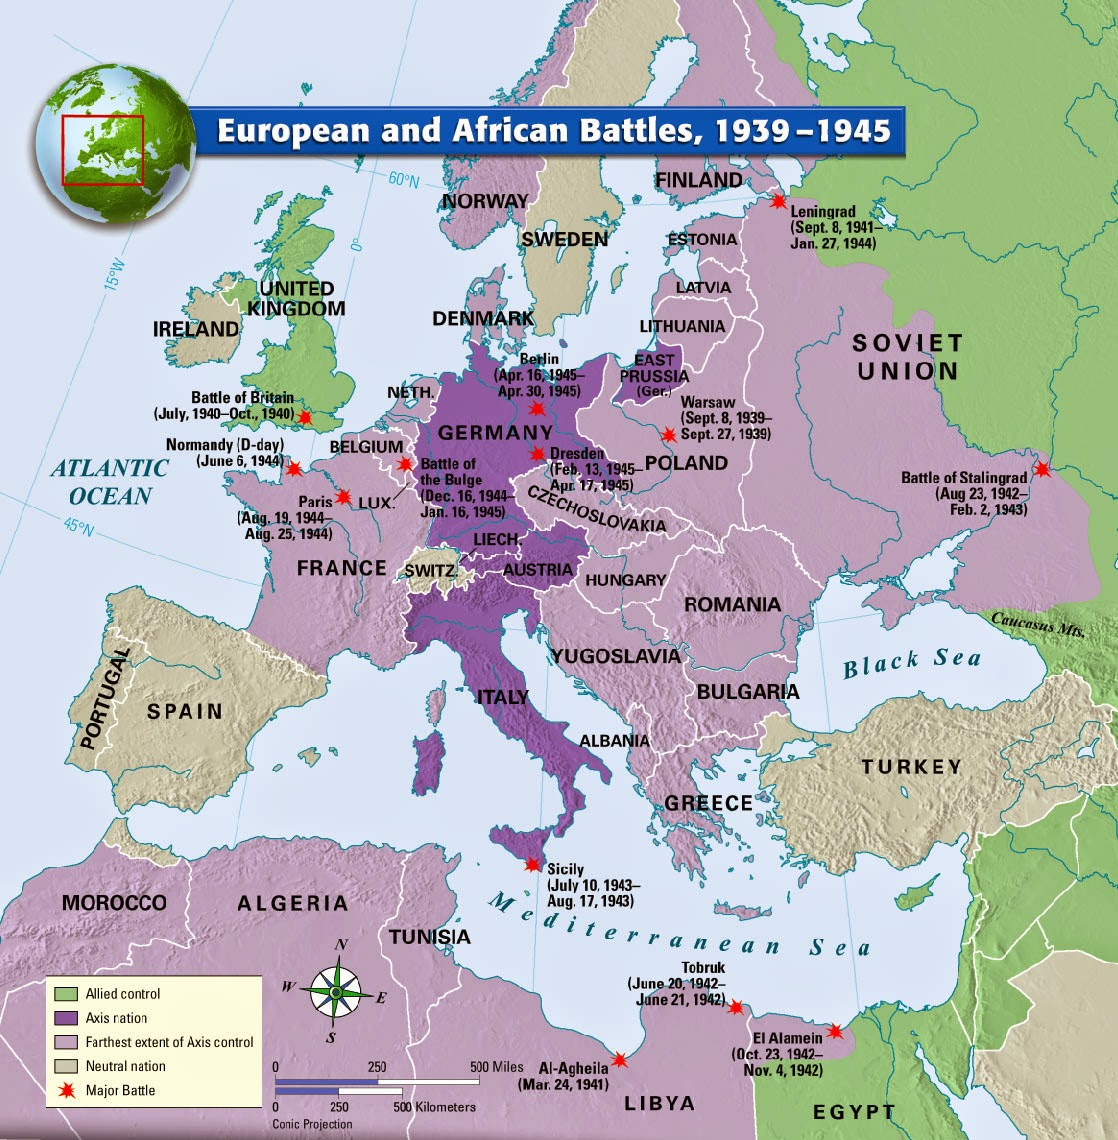 Mr es world history page world history chapter 32 world war assignment packet for chapter 32 world war ii gumiabroncs Choice Image